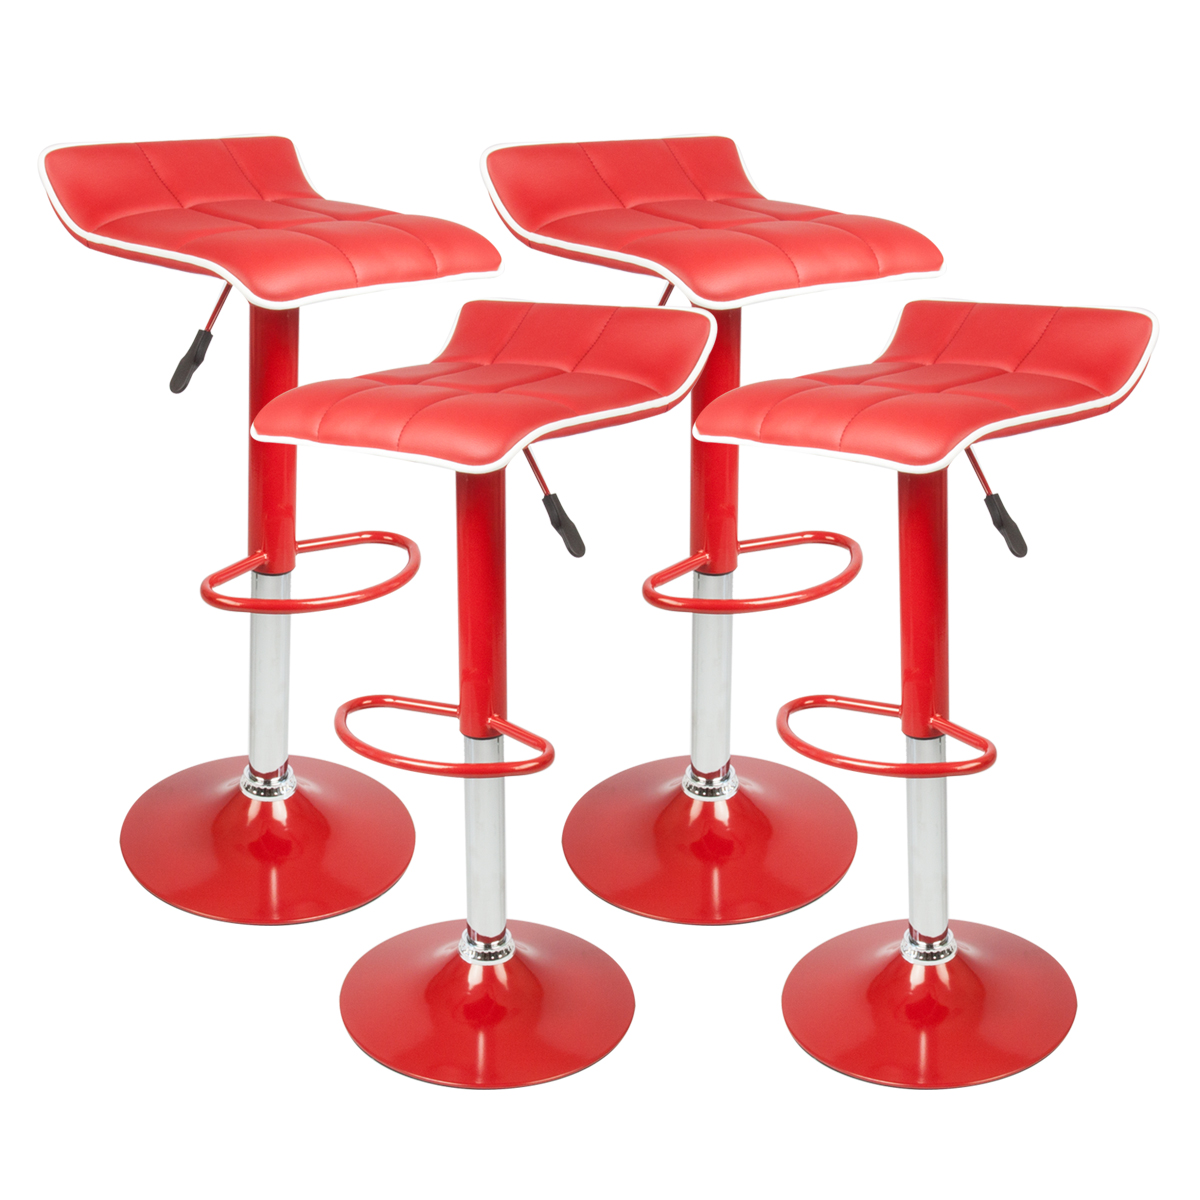 RED SET OF 4 BAR Stools Leather Hydraulic Swivel Dinning  : 41444ad from ebay.com.au size 1200 x 1200 jpeg 422kB